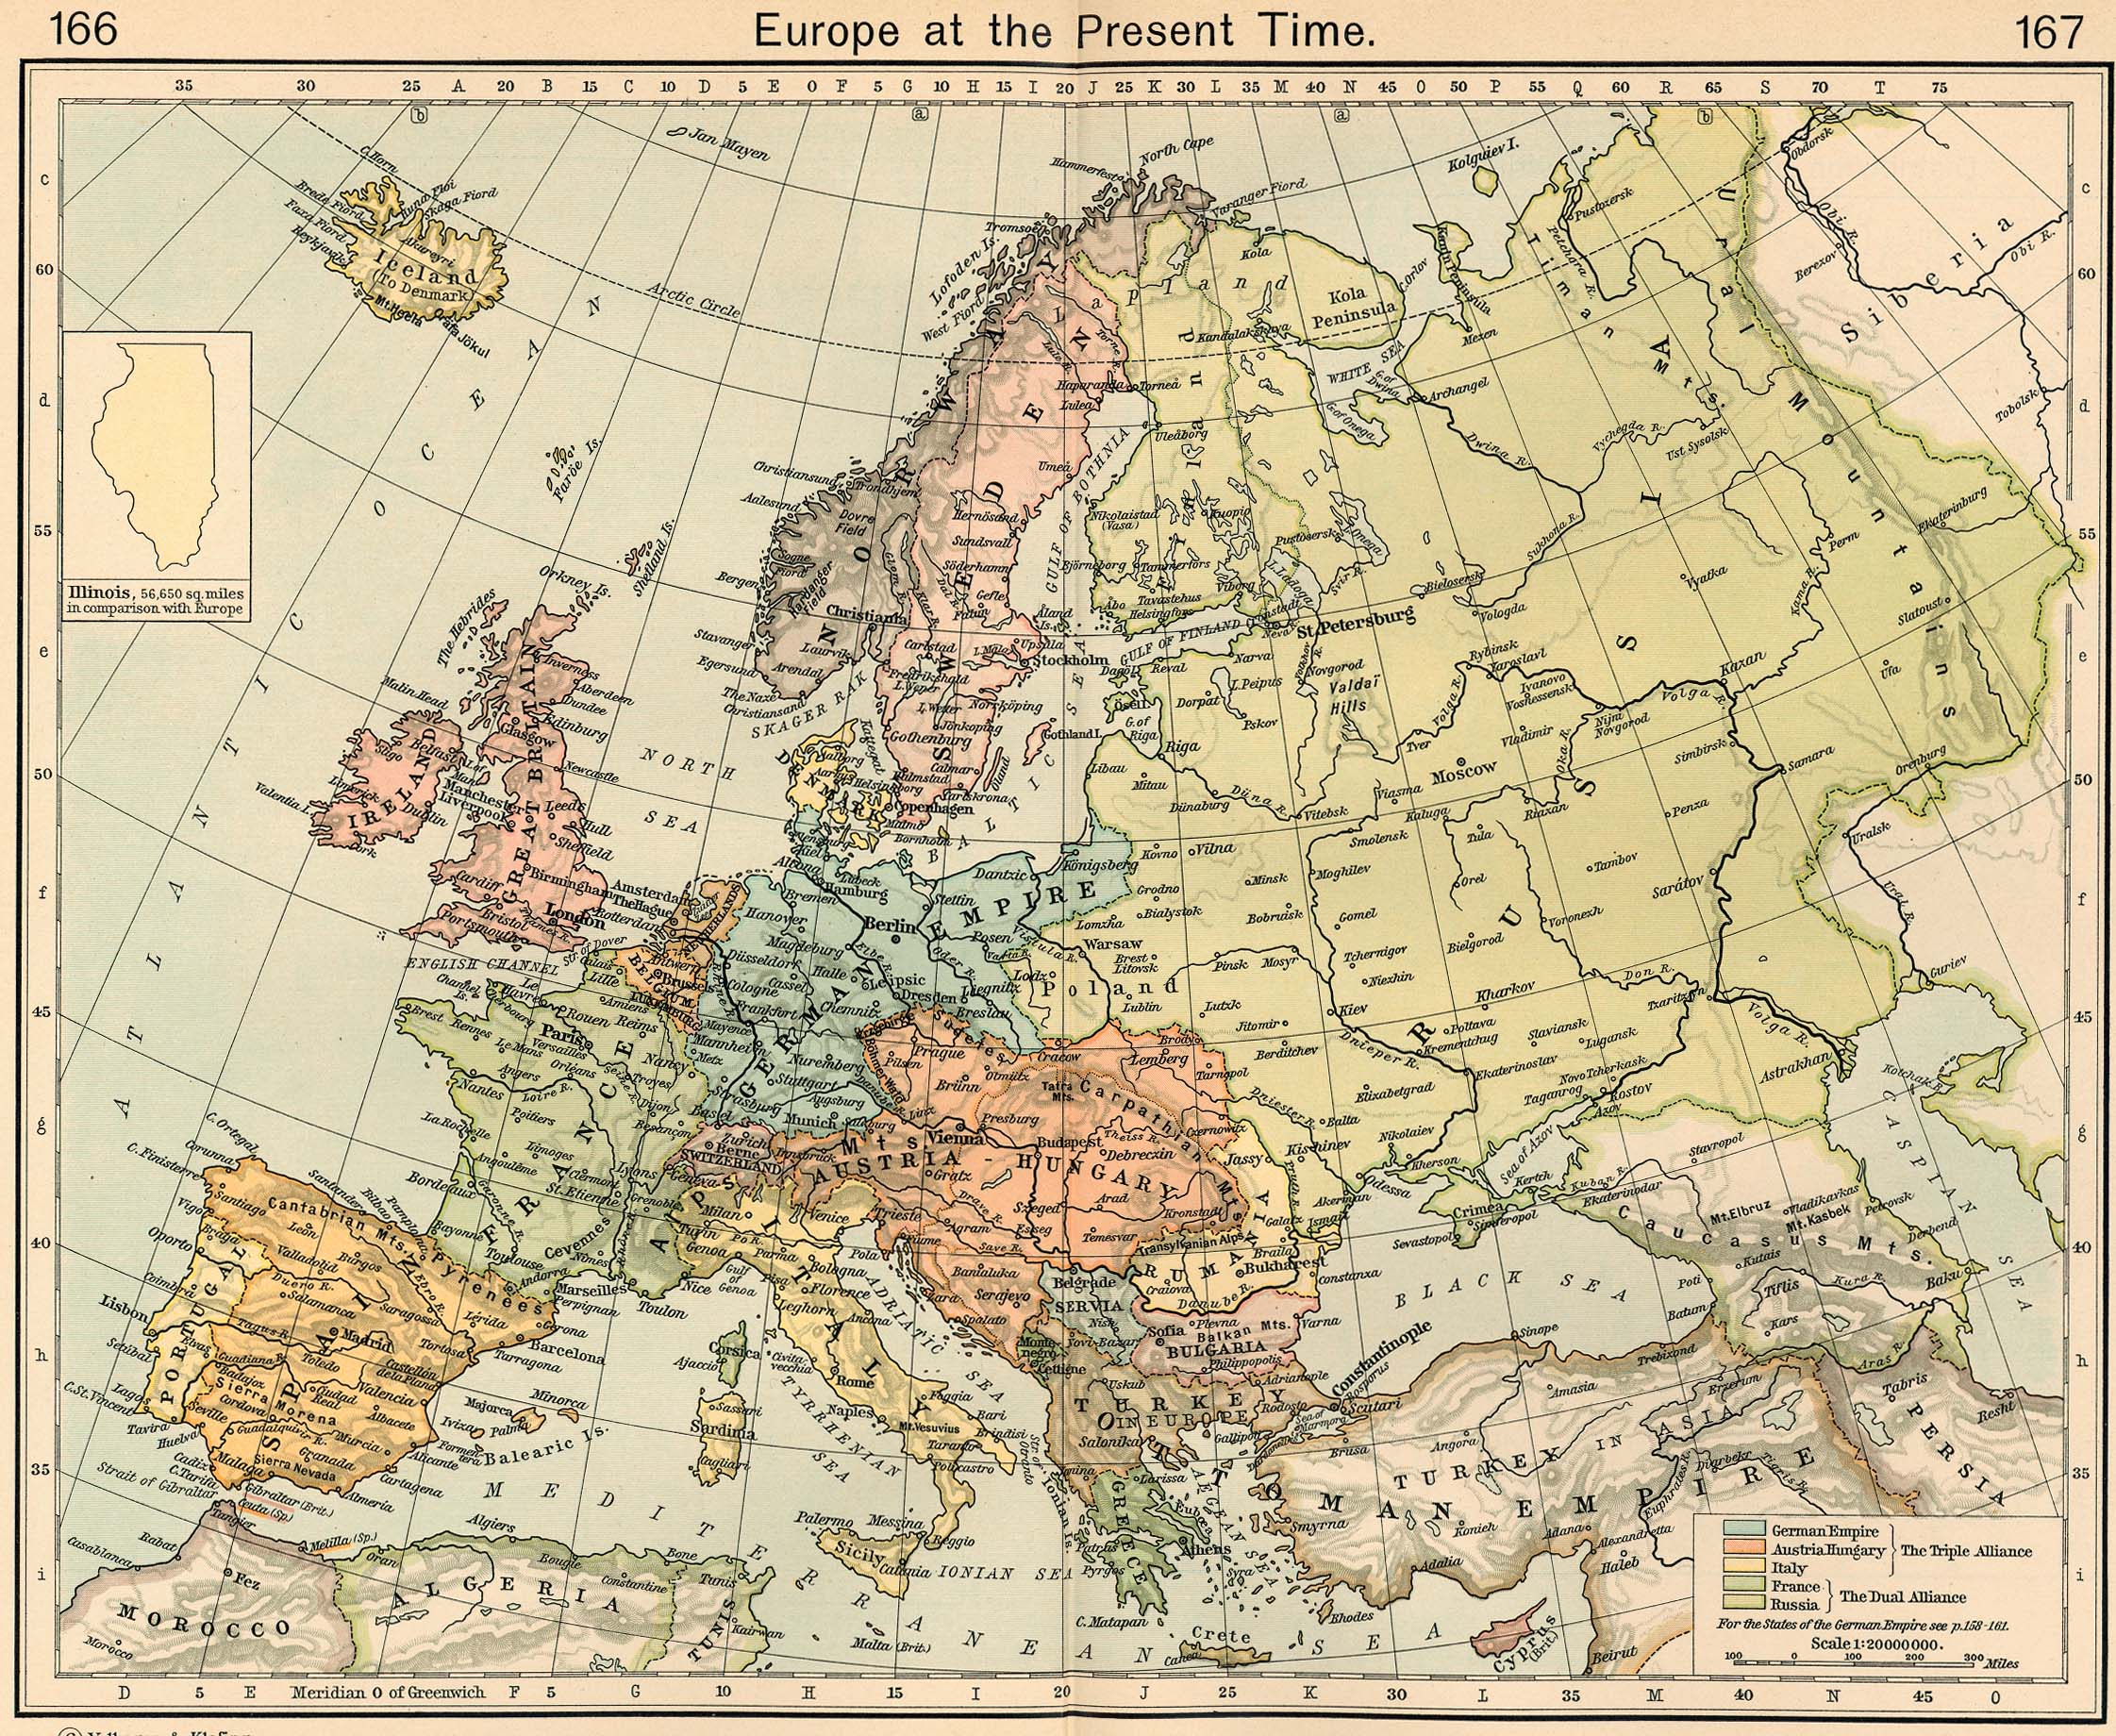 map of austria hungary 1900 1907 with X18801914 on The Austro Hungarian Empire In 1897 besides India Maps as well Austria Hungary Antique Map 1907 Dodd moreover File Yuzhakov Big Encyclopedia Map of Austria Hungary additionally Literacy Rate In Austria Hungary 1880.